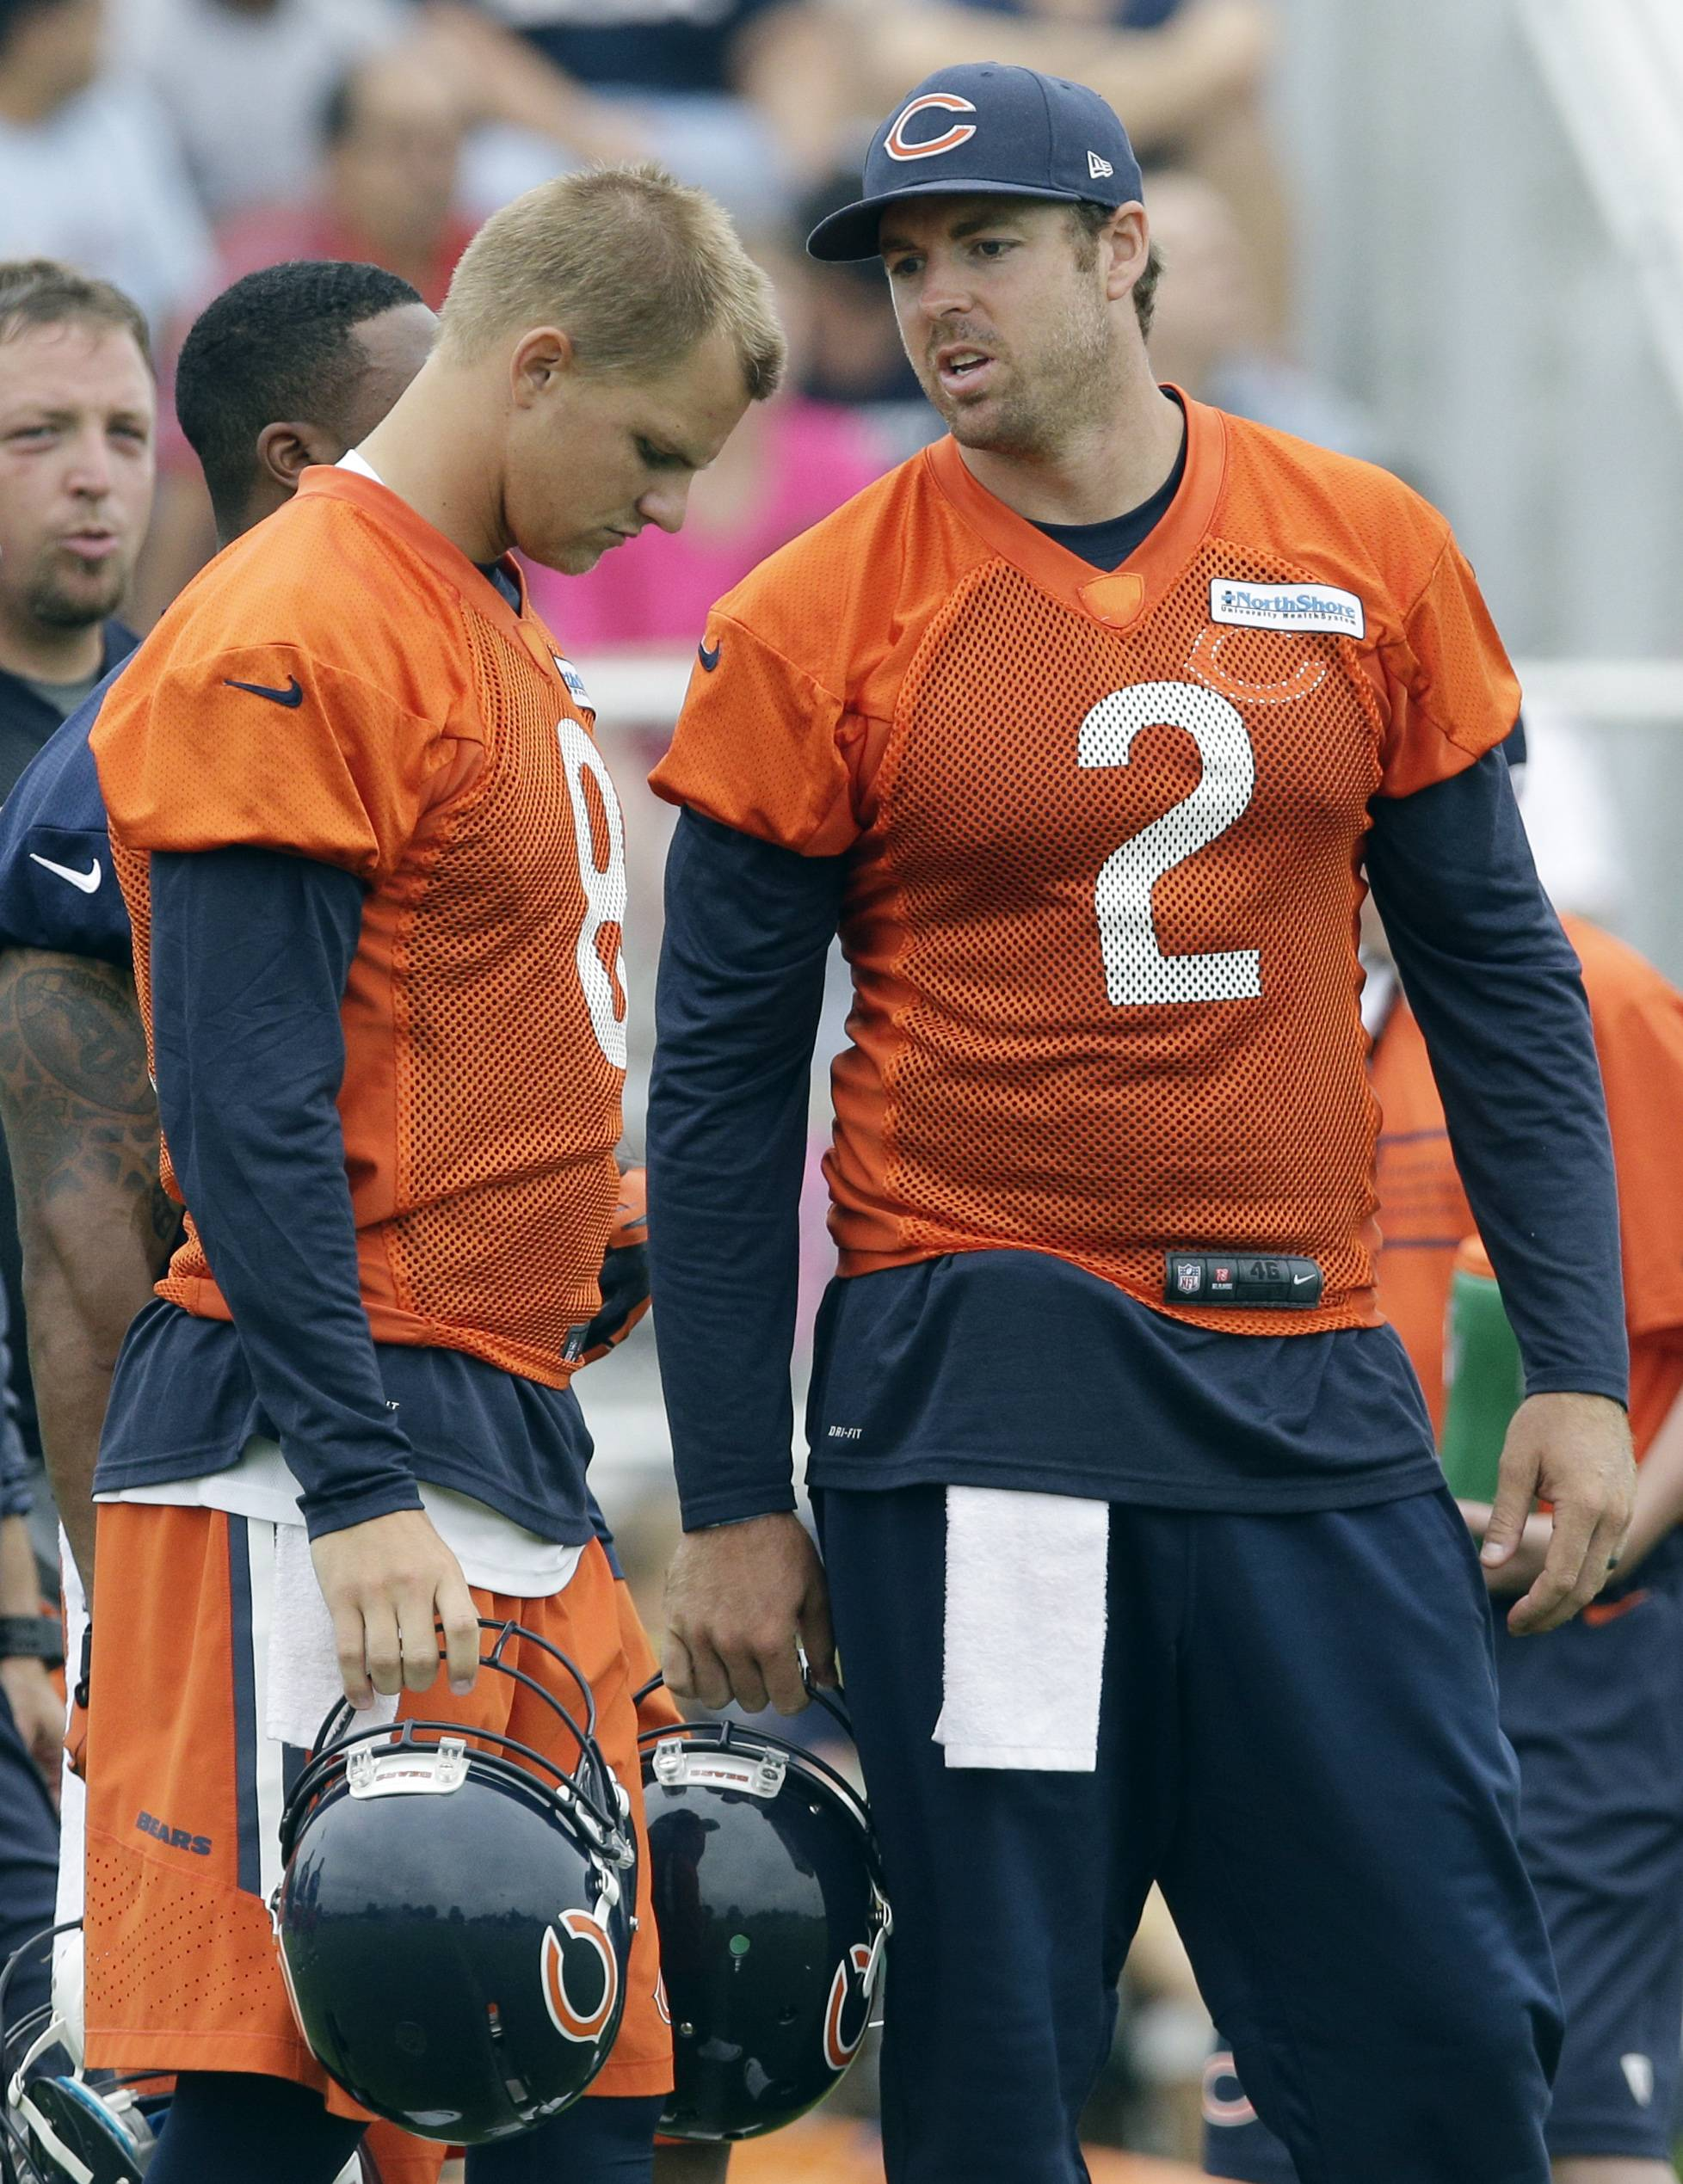 Bears QB Jimmy Clausen claims a veteran's mentality